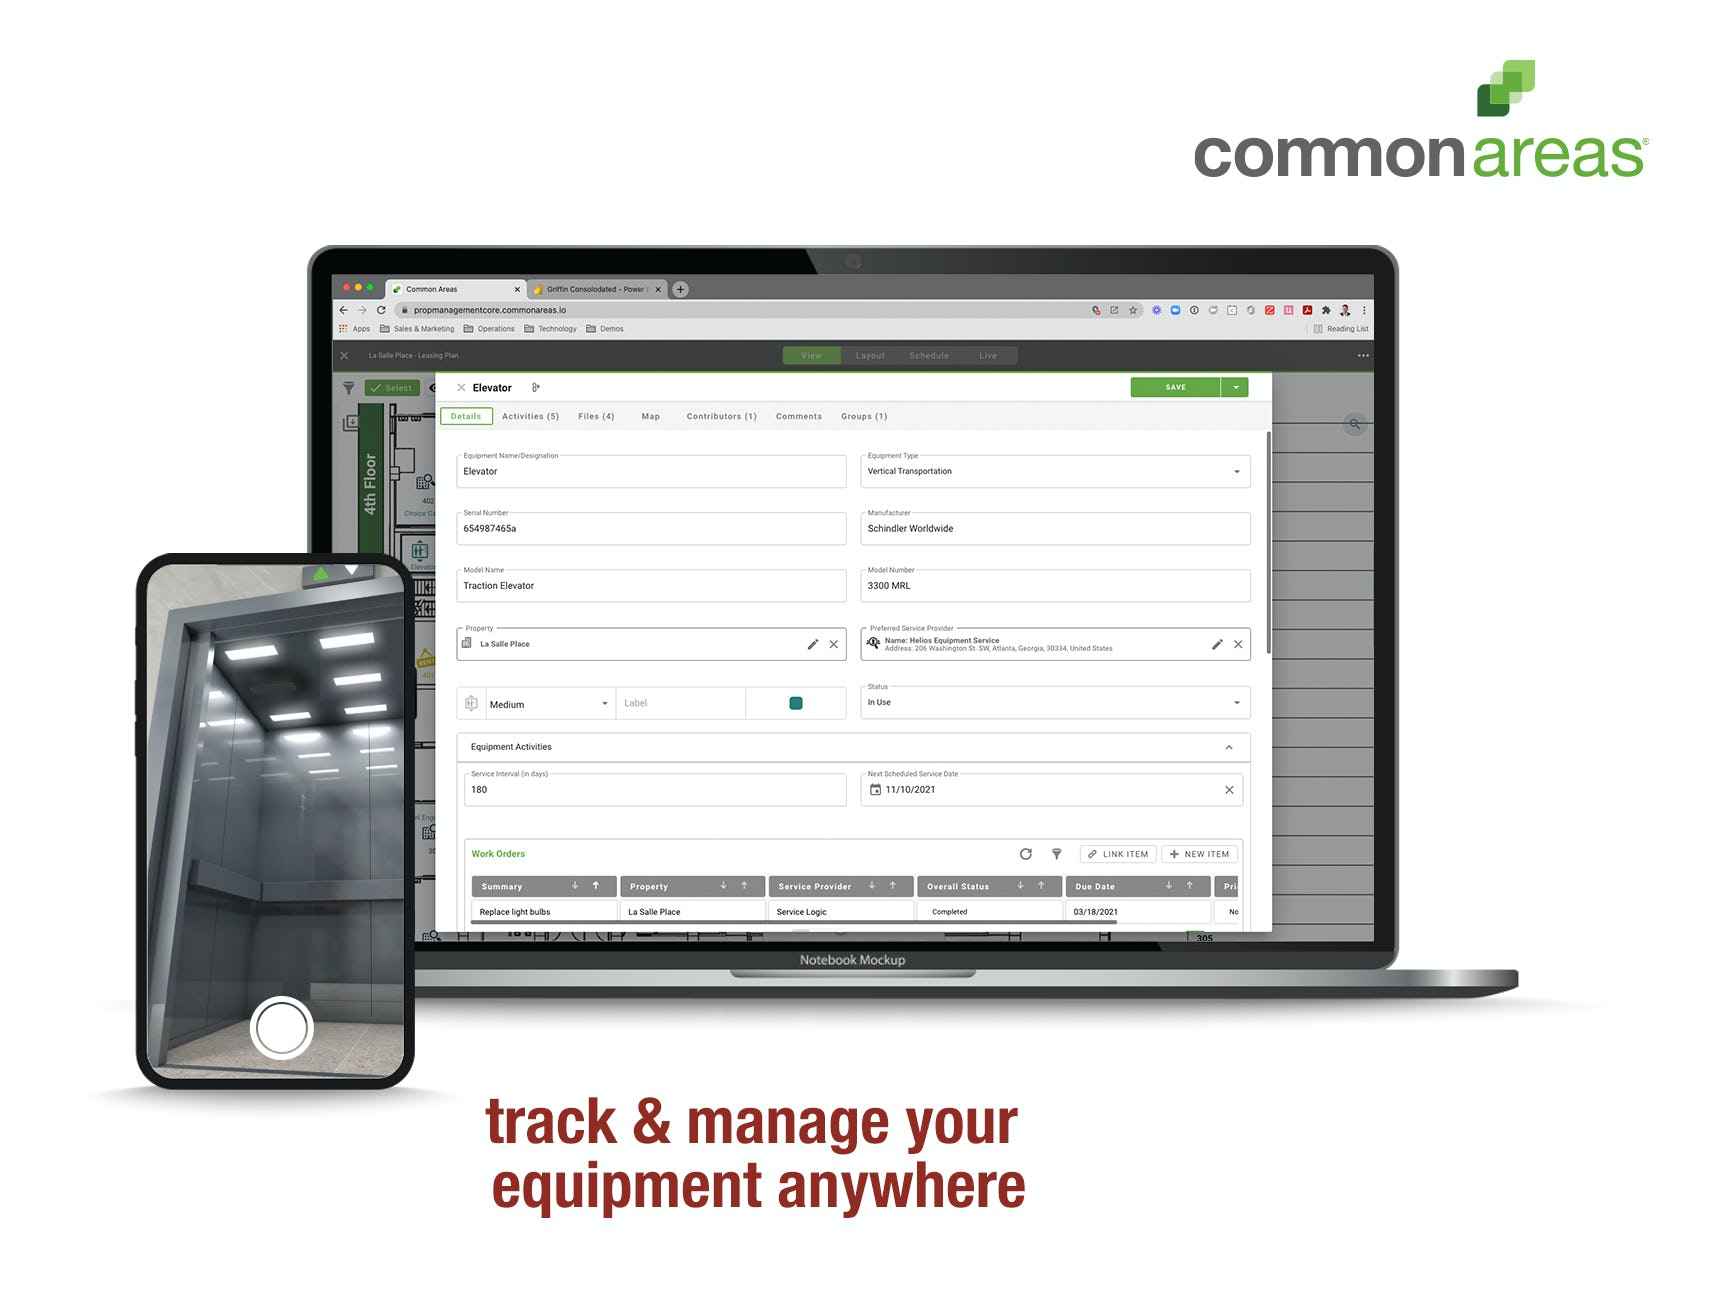 Common Areas Software - Access all of your equipment information in one place, right at your fingertips. Streamline your maintenance processes and keep track of everything related to your properties including work orders, inspections, equipment and more.